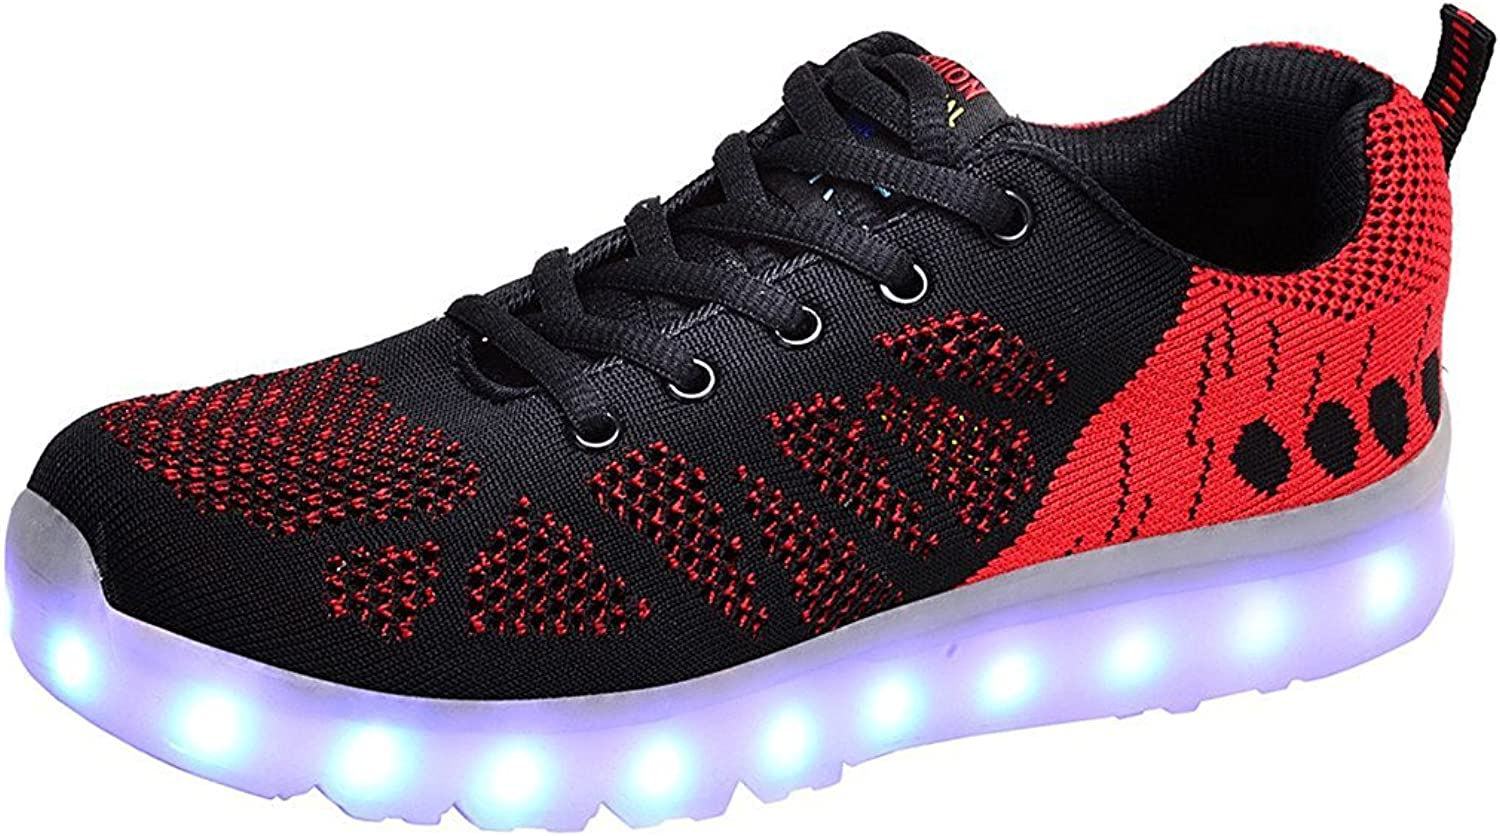 Xiaoyang Men Women LED Light Up Sport shoes Knit Tennis Lace-up USB Charging Flashing Sneakers